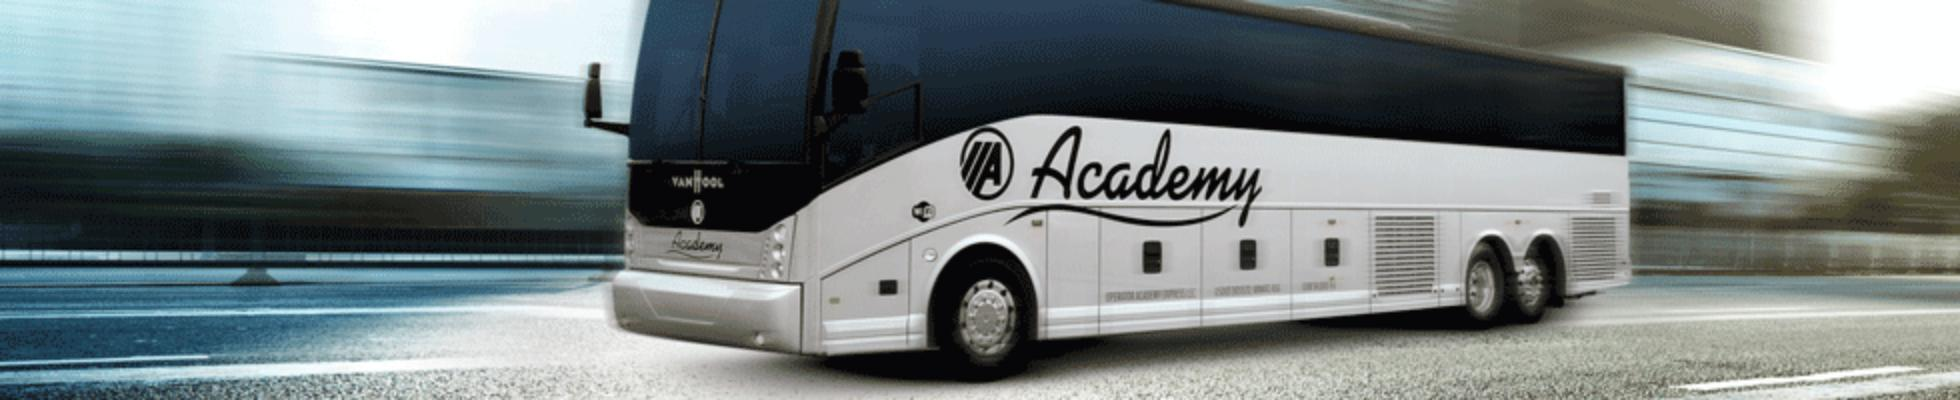 Working at Academy Bus: 114 Reviews | Indeed com